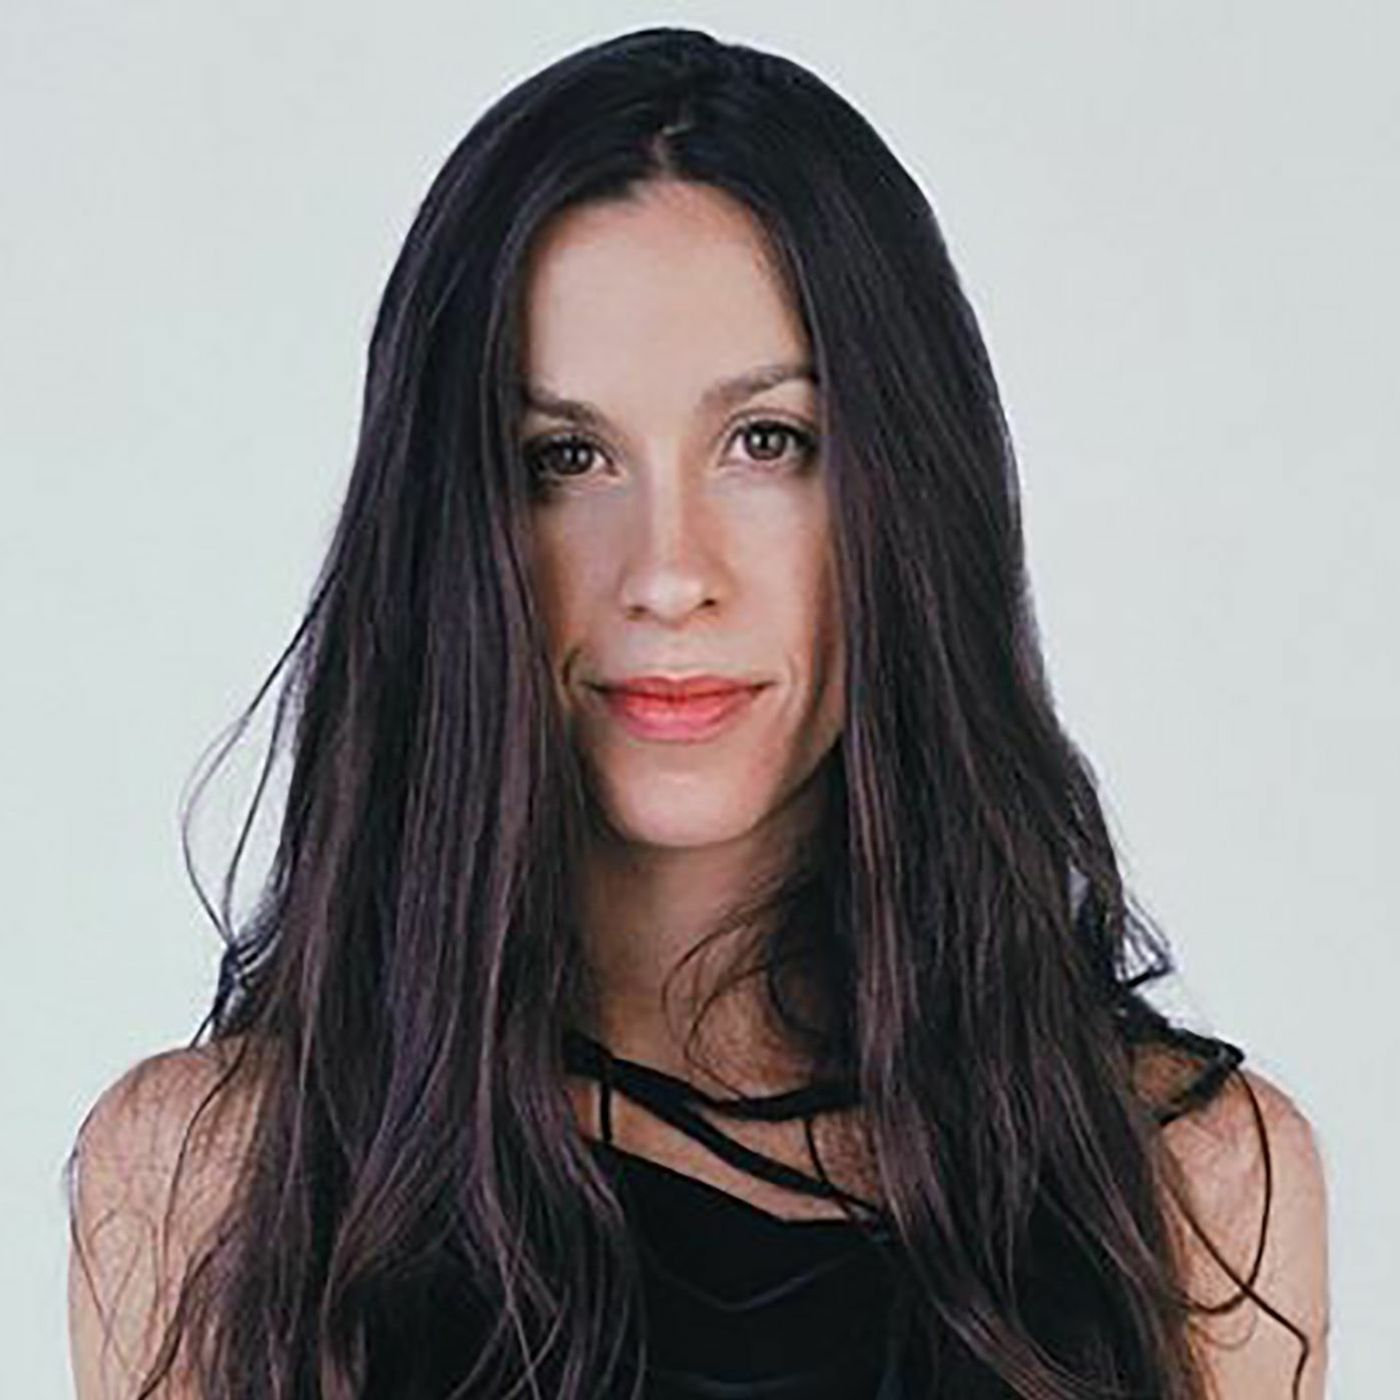 3HITSMIXED 053 Alanis Morissette - Moving On